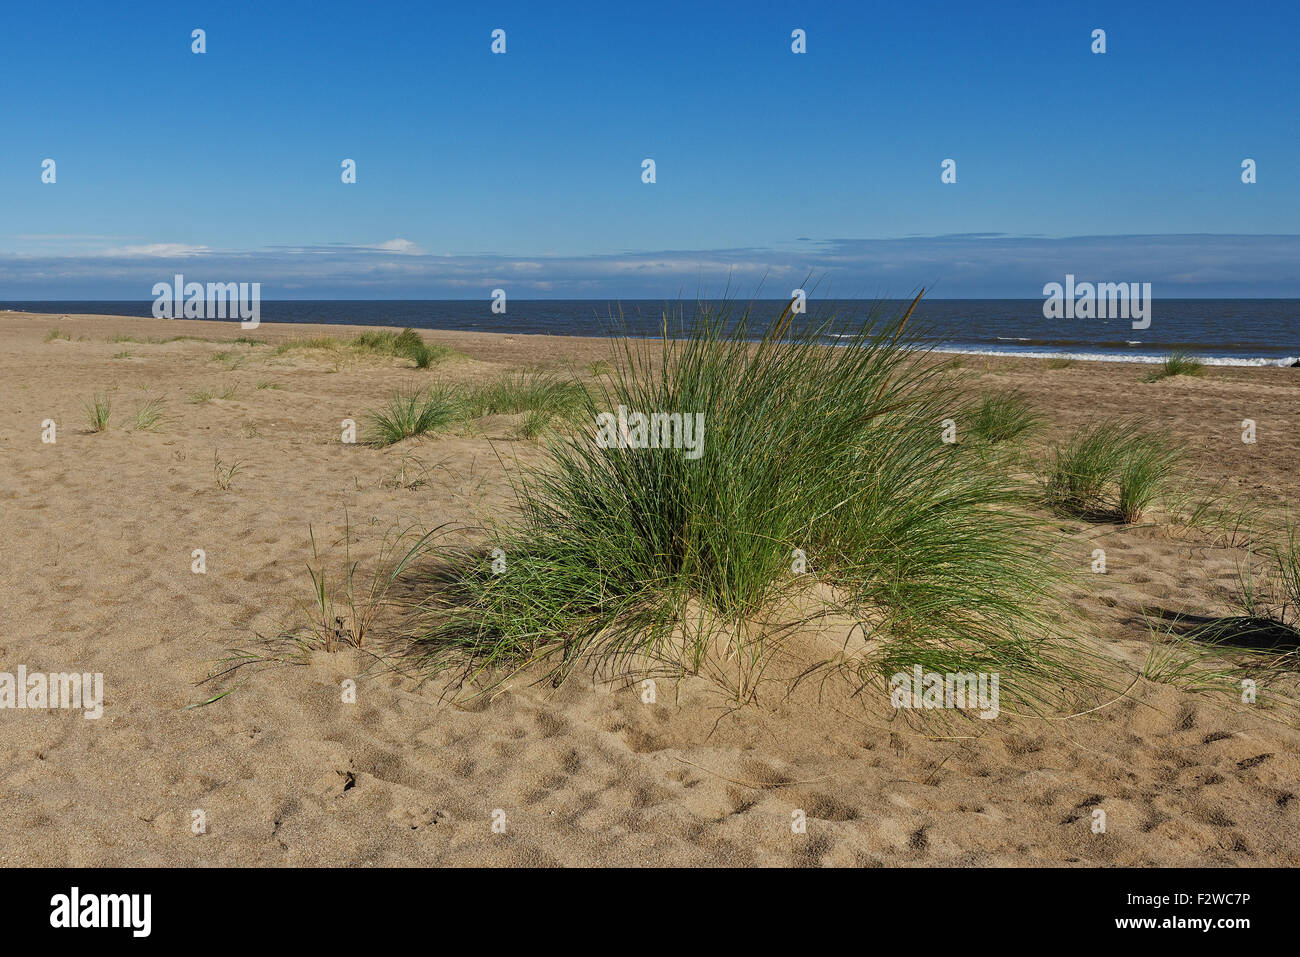 Marram Grass (Ammophila Arenaria) on a beach on the East Coast of the UK - Stock Image